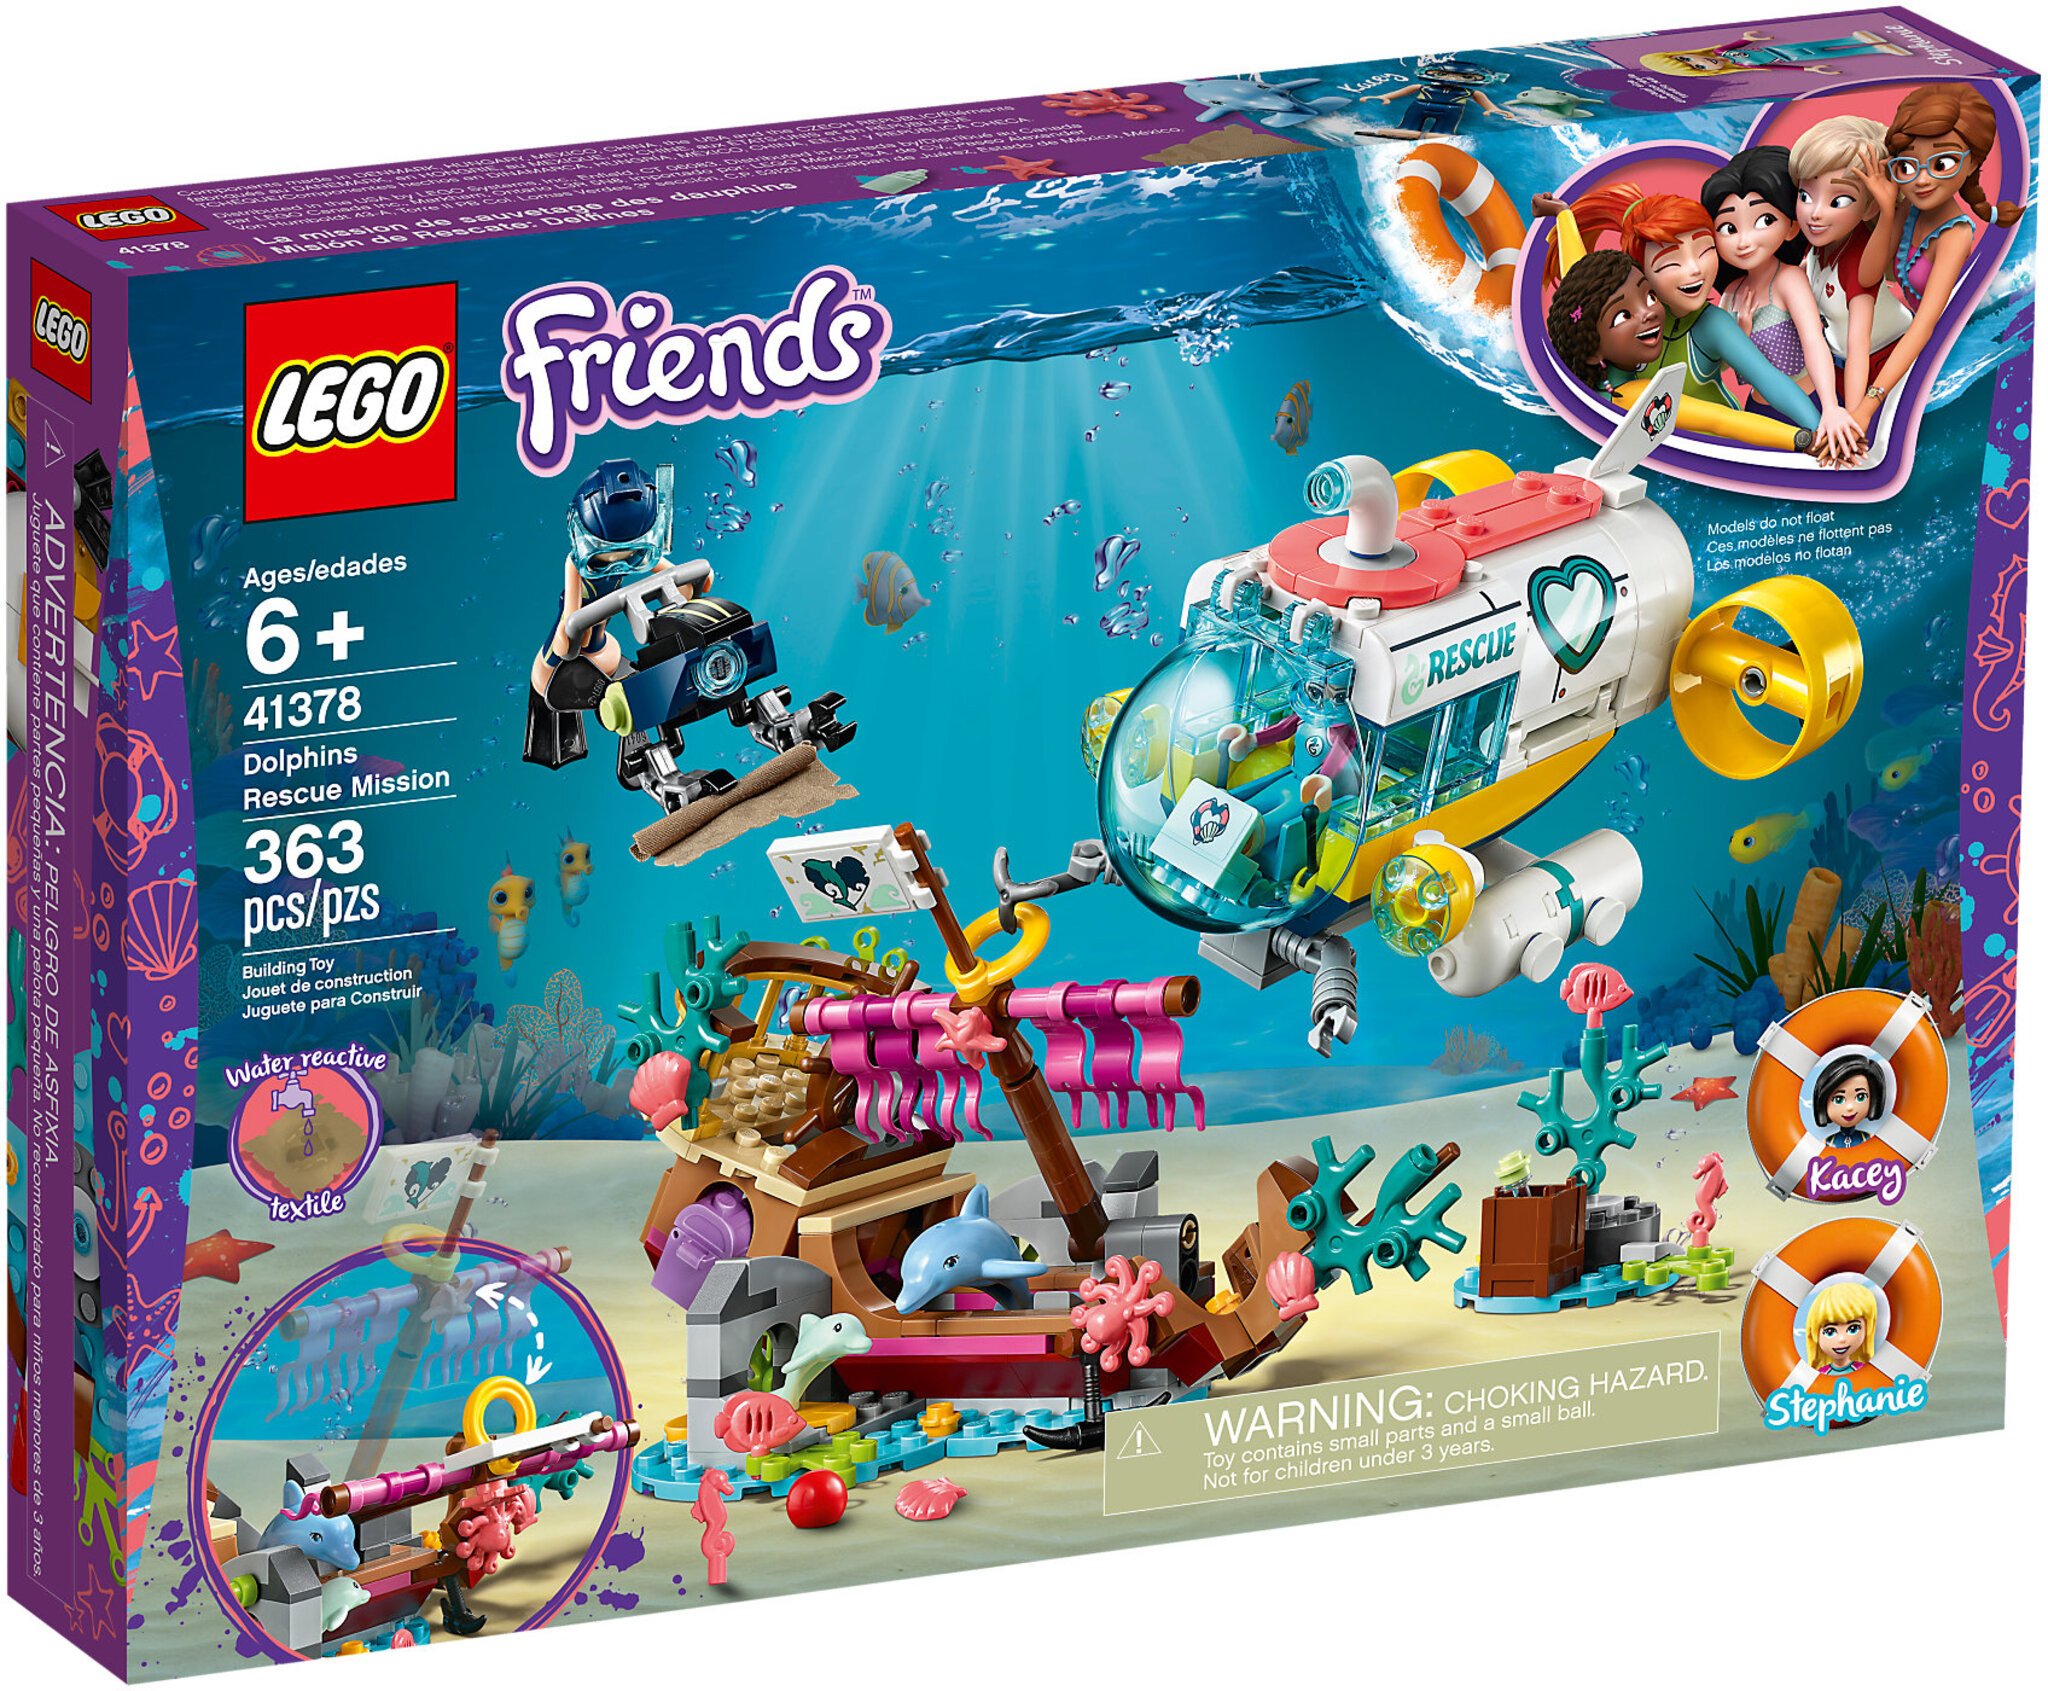 Mission Lego Dolphins Rescue Friends 41378 35ALRj4